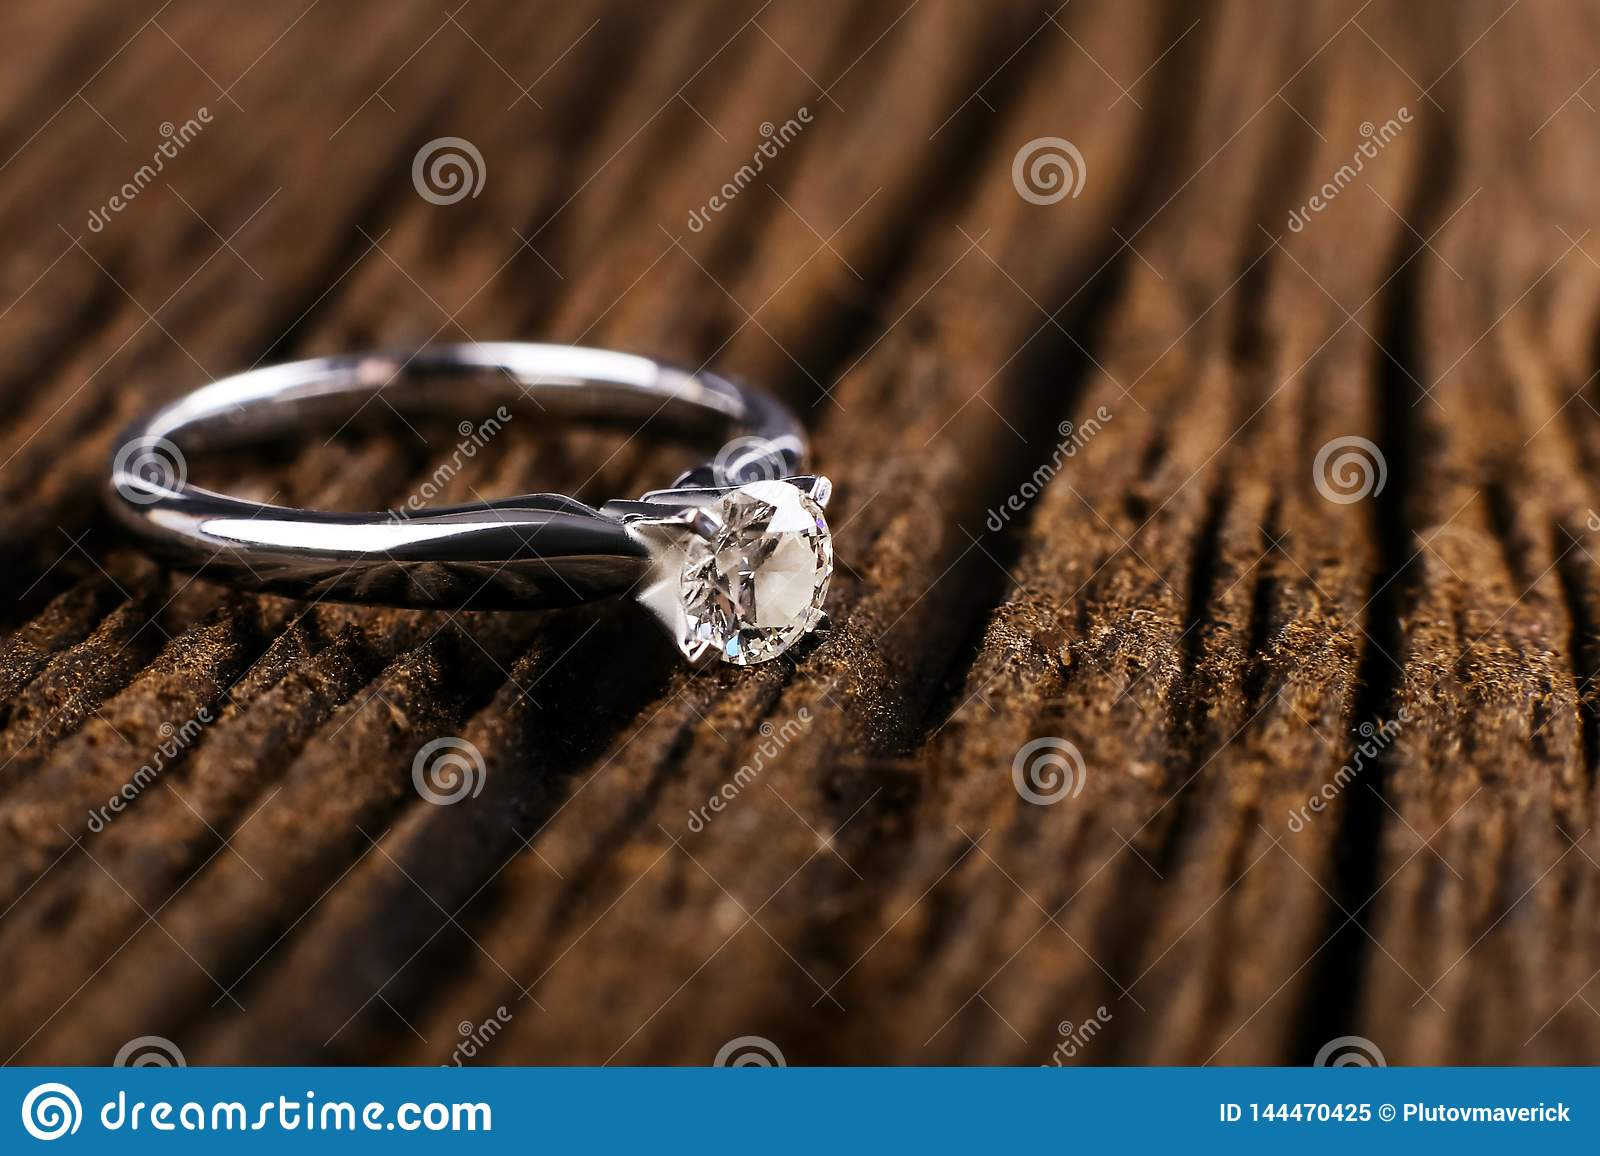 White Gold And Platinum Diamond Engagement Ring On A Wooden Table